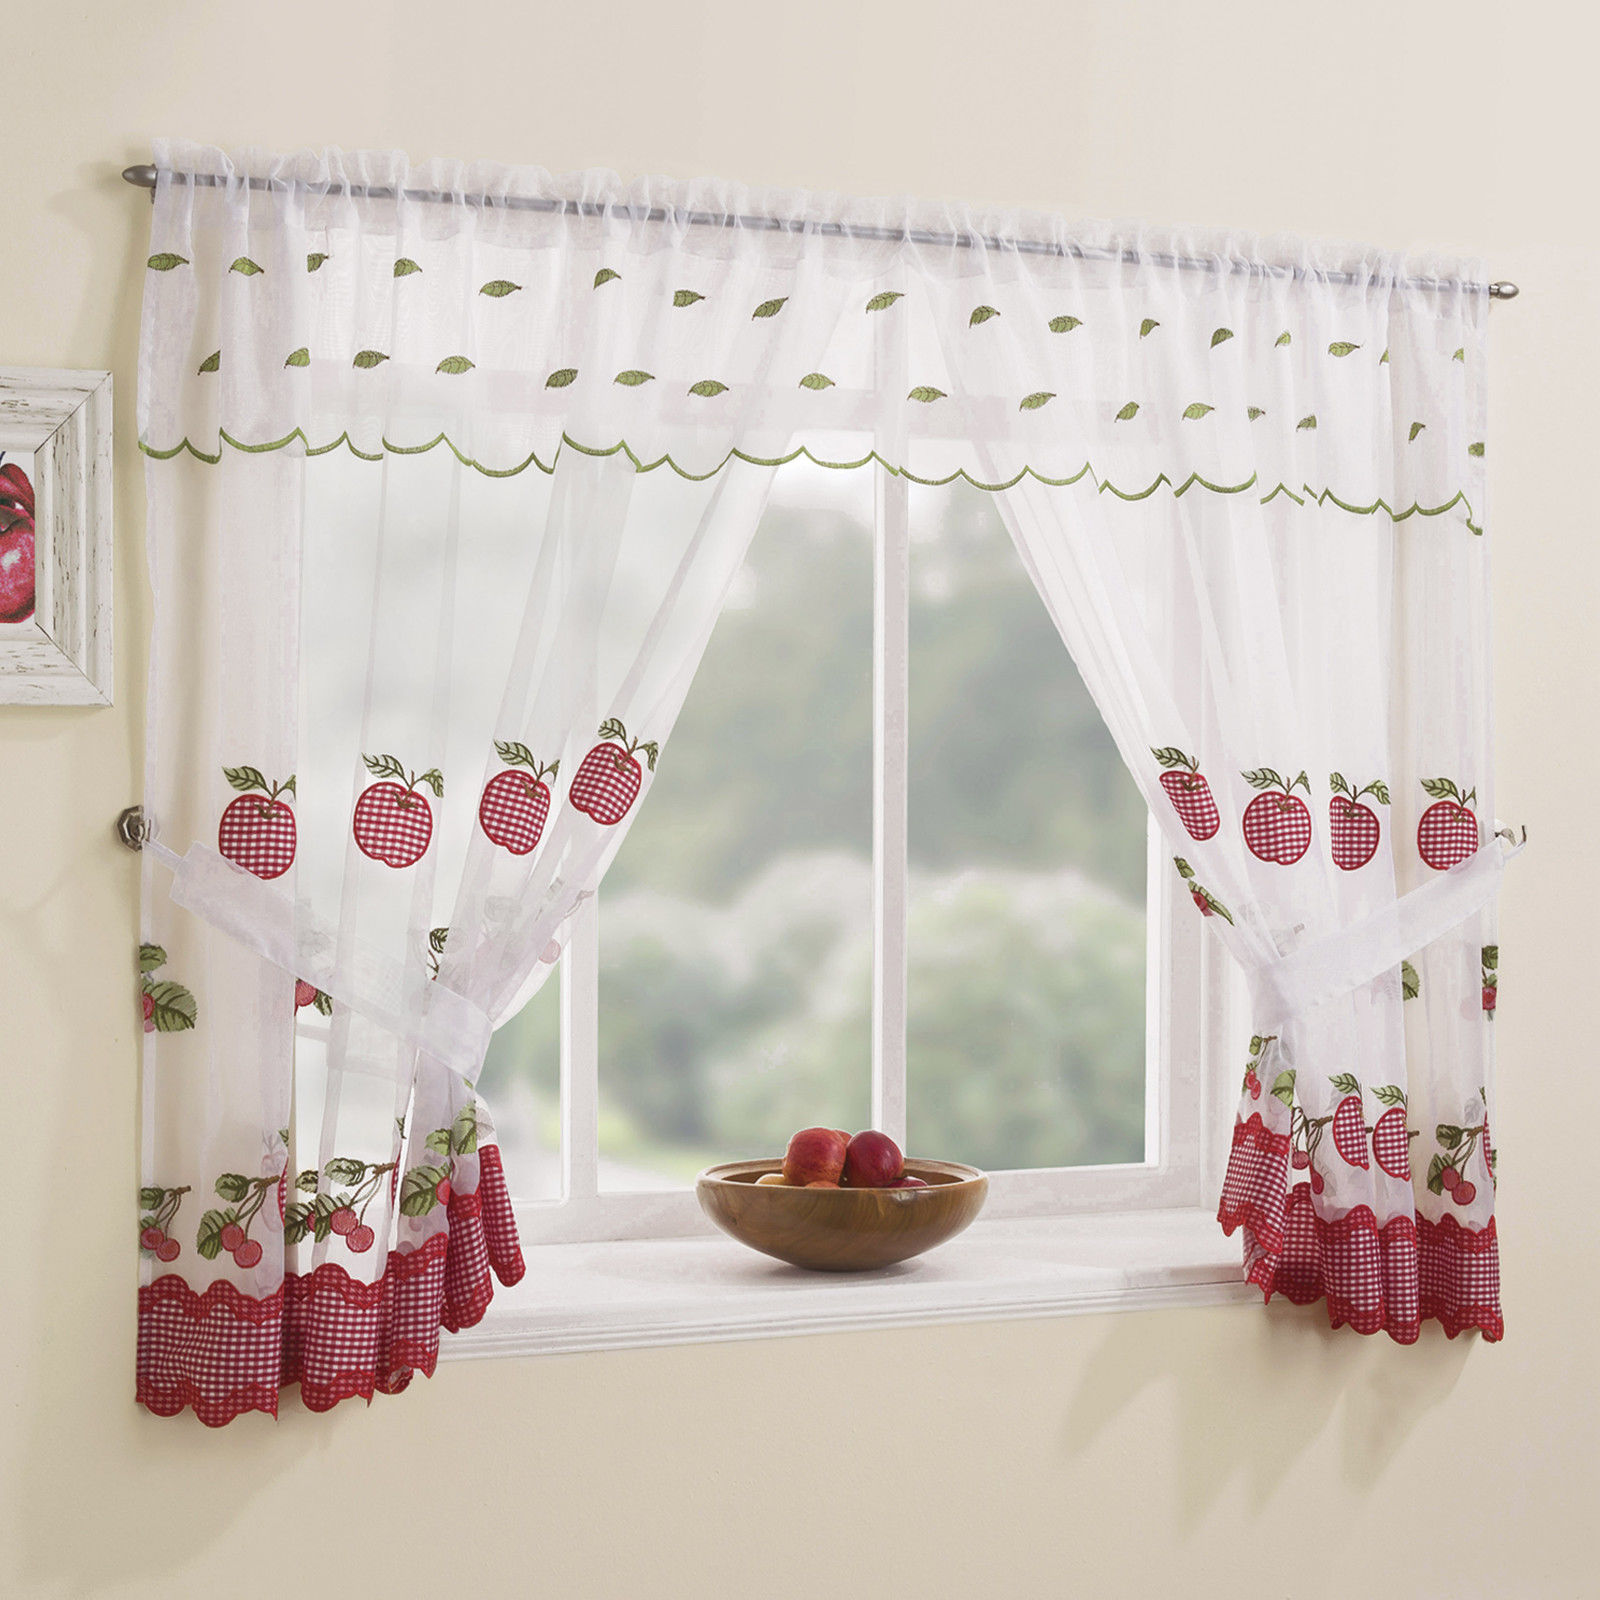 WINCHESTER KITCHEN WINDOW SET CHECK CURTAINS & TIE BACKS